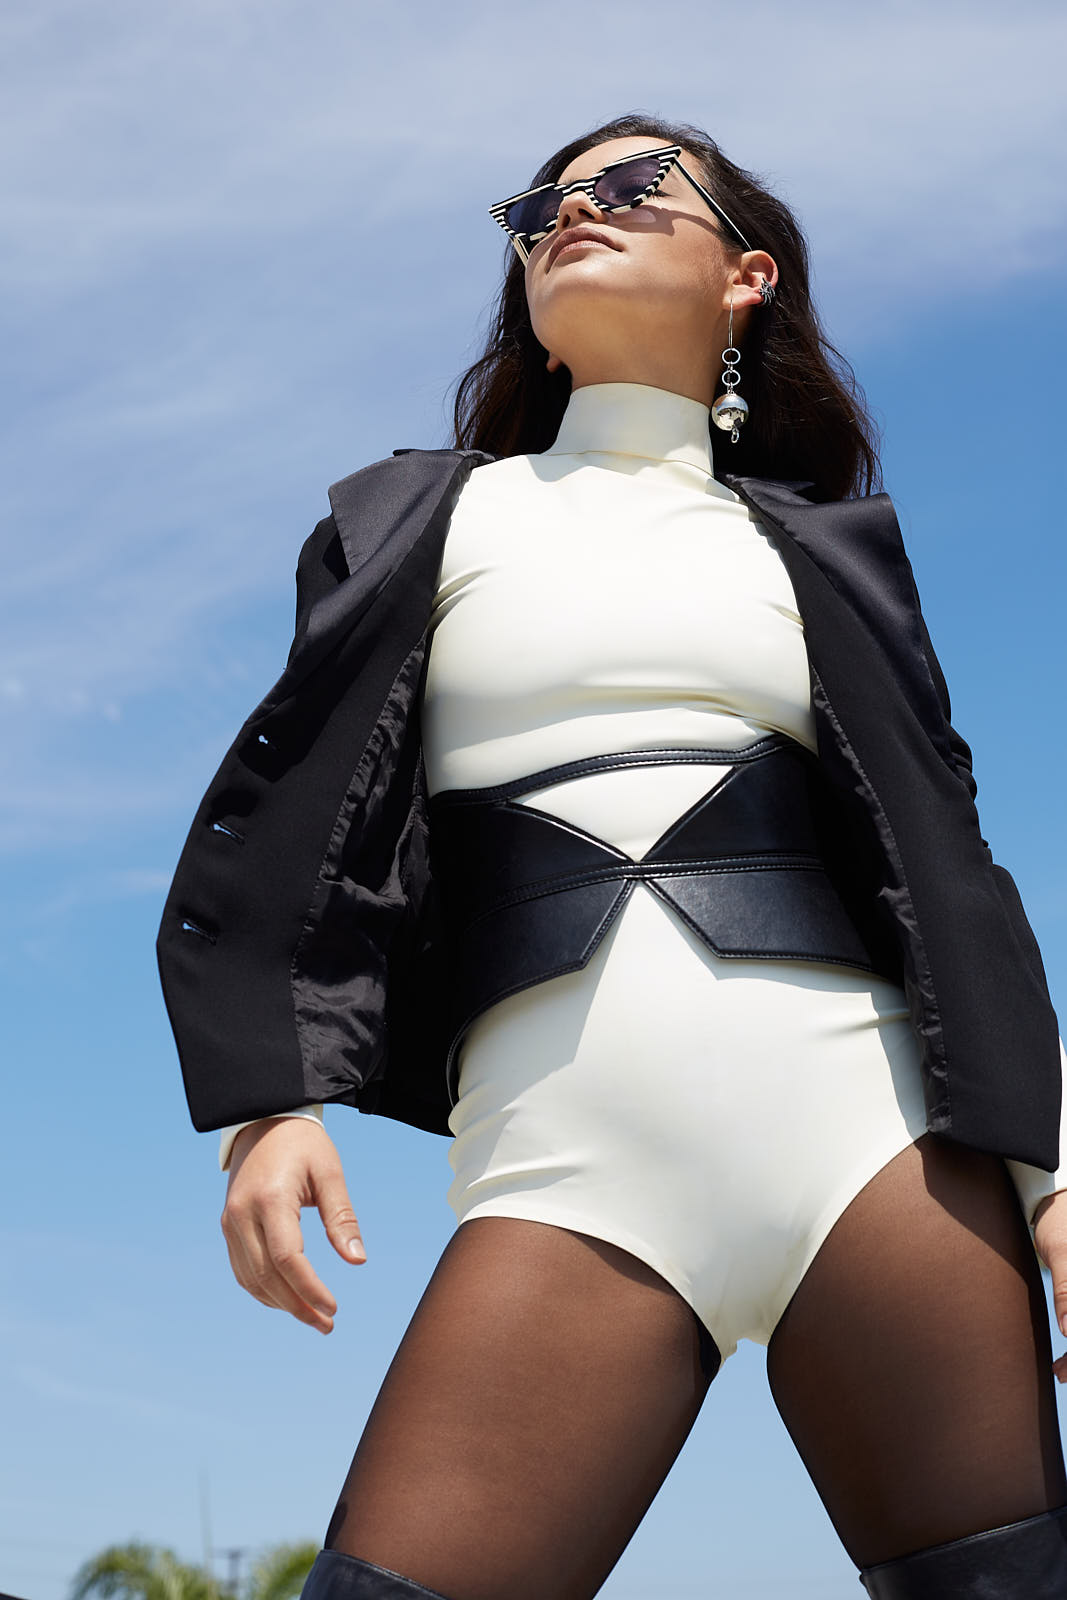 Kim West leotard Vintage Emporio Armani jacket Hiraeth belt Wolford tights LORIBLU long black boots MOUNSER earring Graziela Gems x2 ear cuffs Illesteva black and white sunglasses